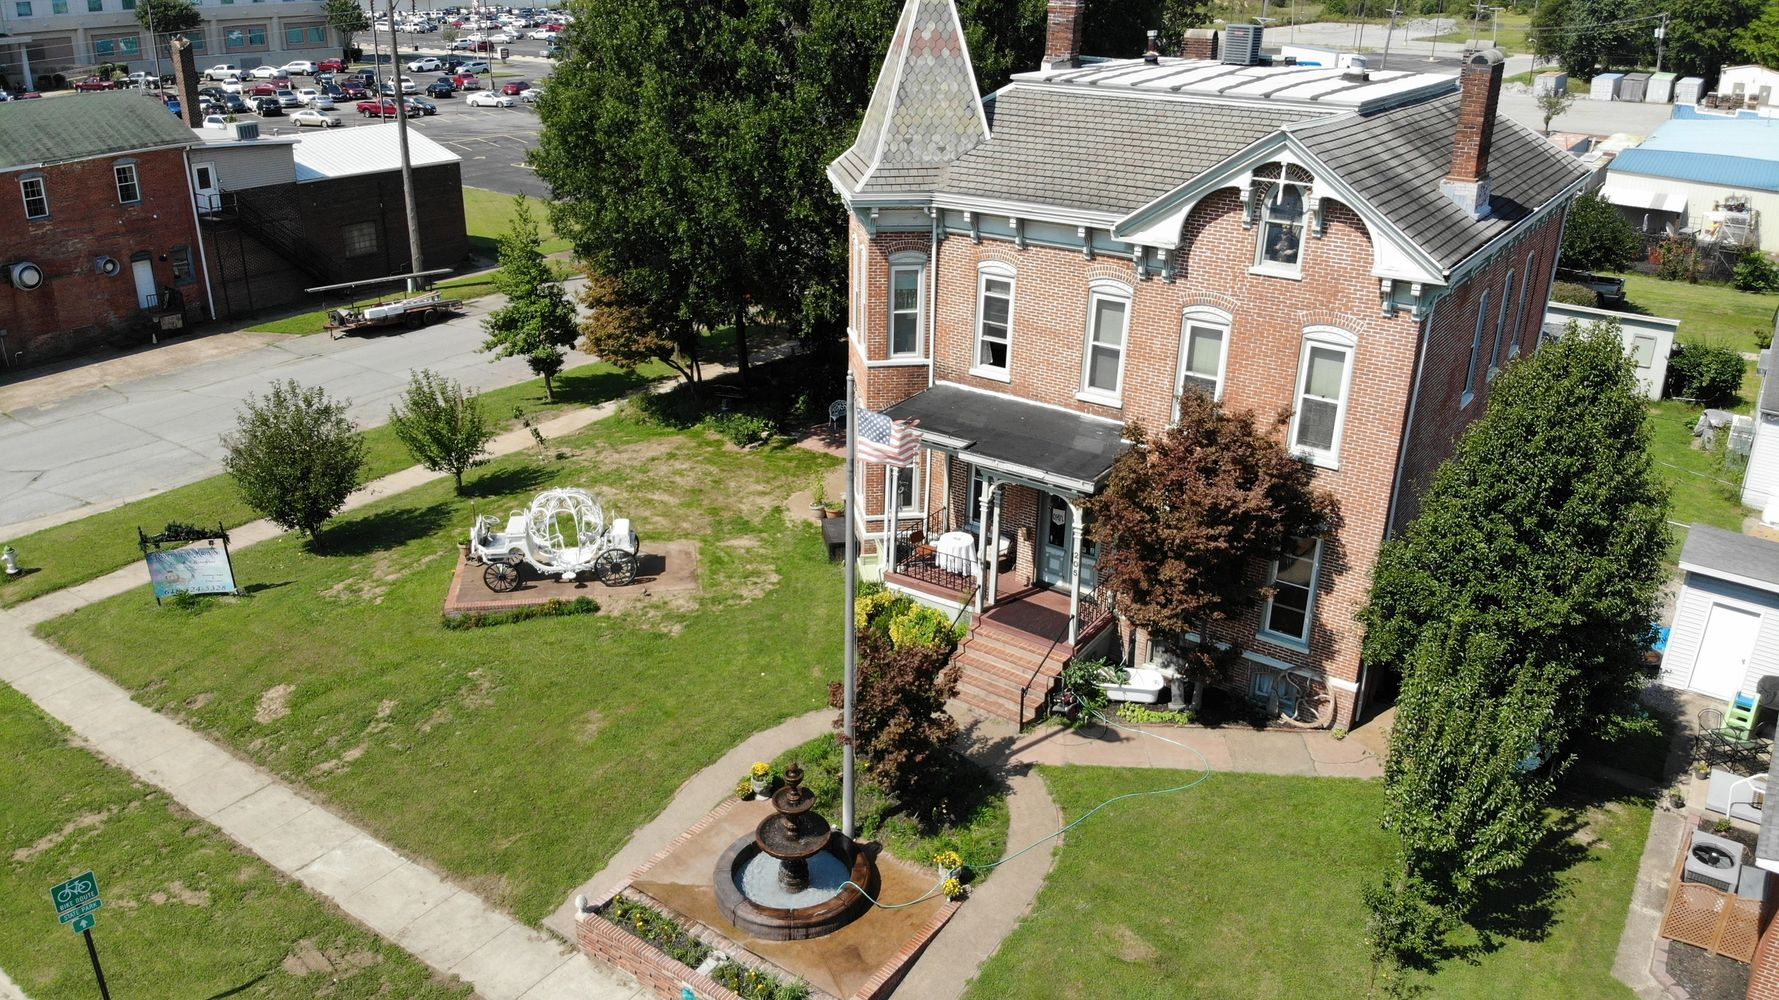 Aerial view of three story, brick mansion with an eight foot tall fountain in the front garden.